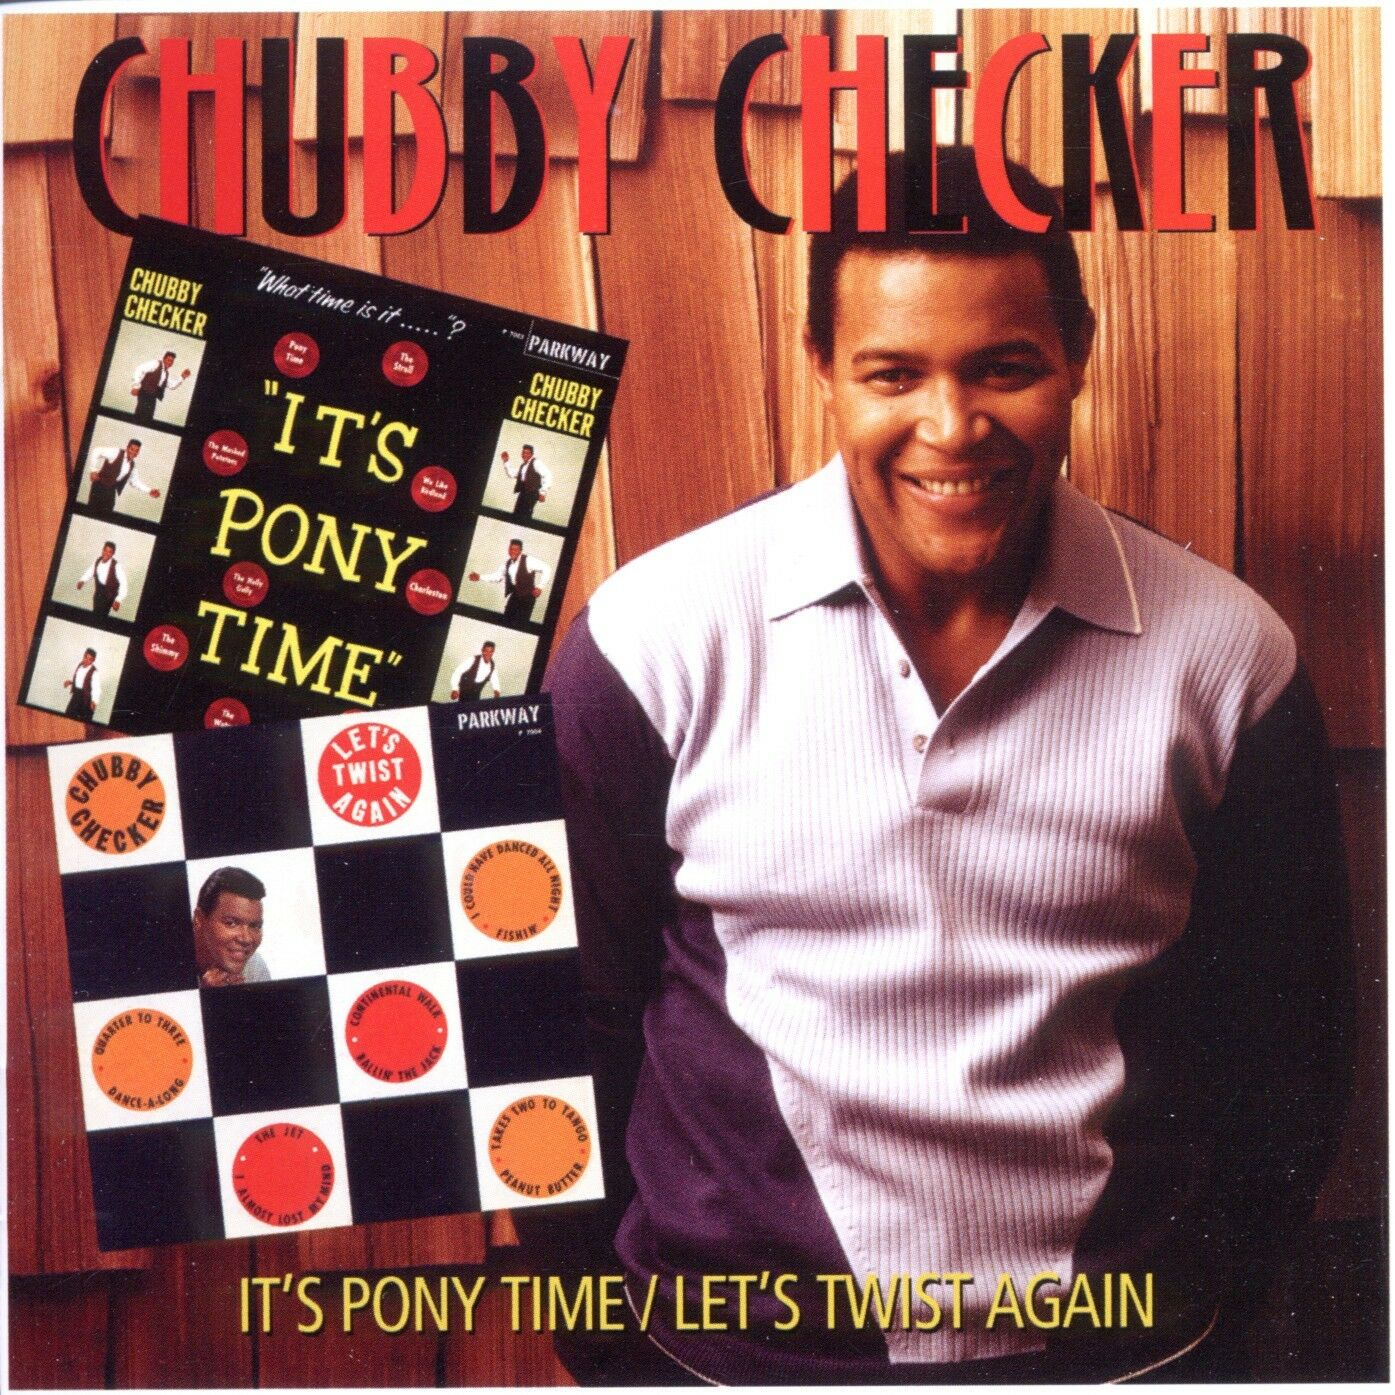 Chubby Checker. Its Pony Time / Lets Twist Again